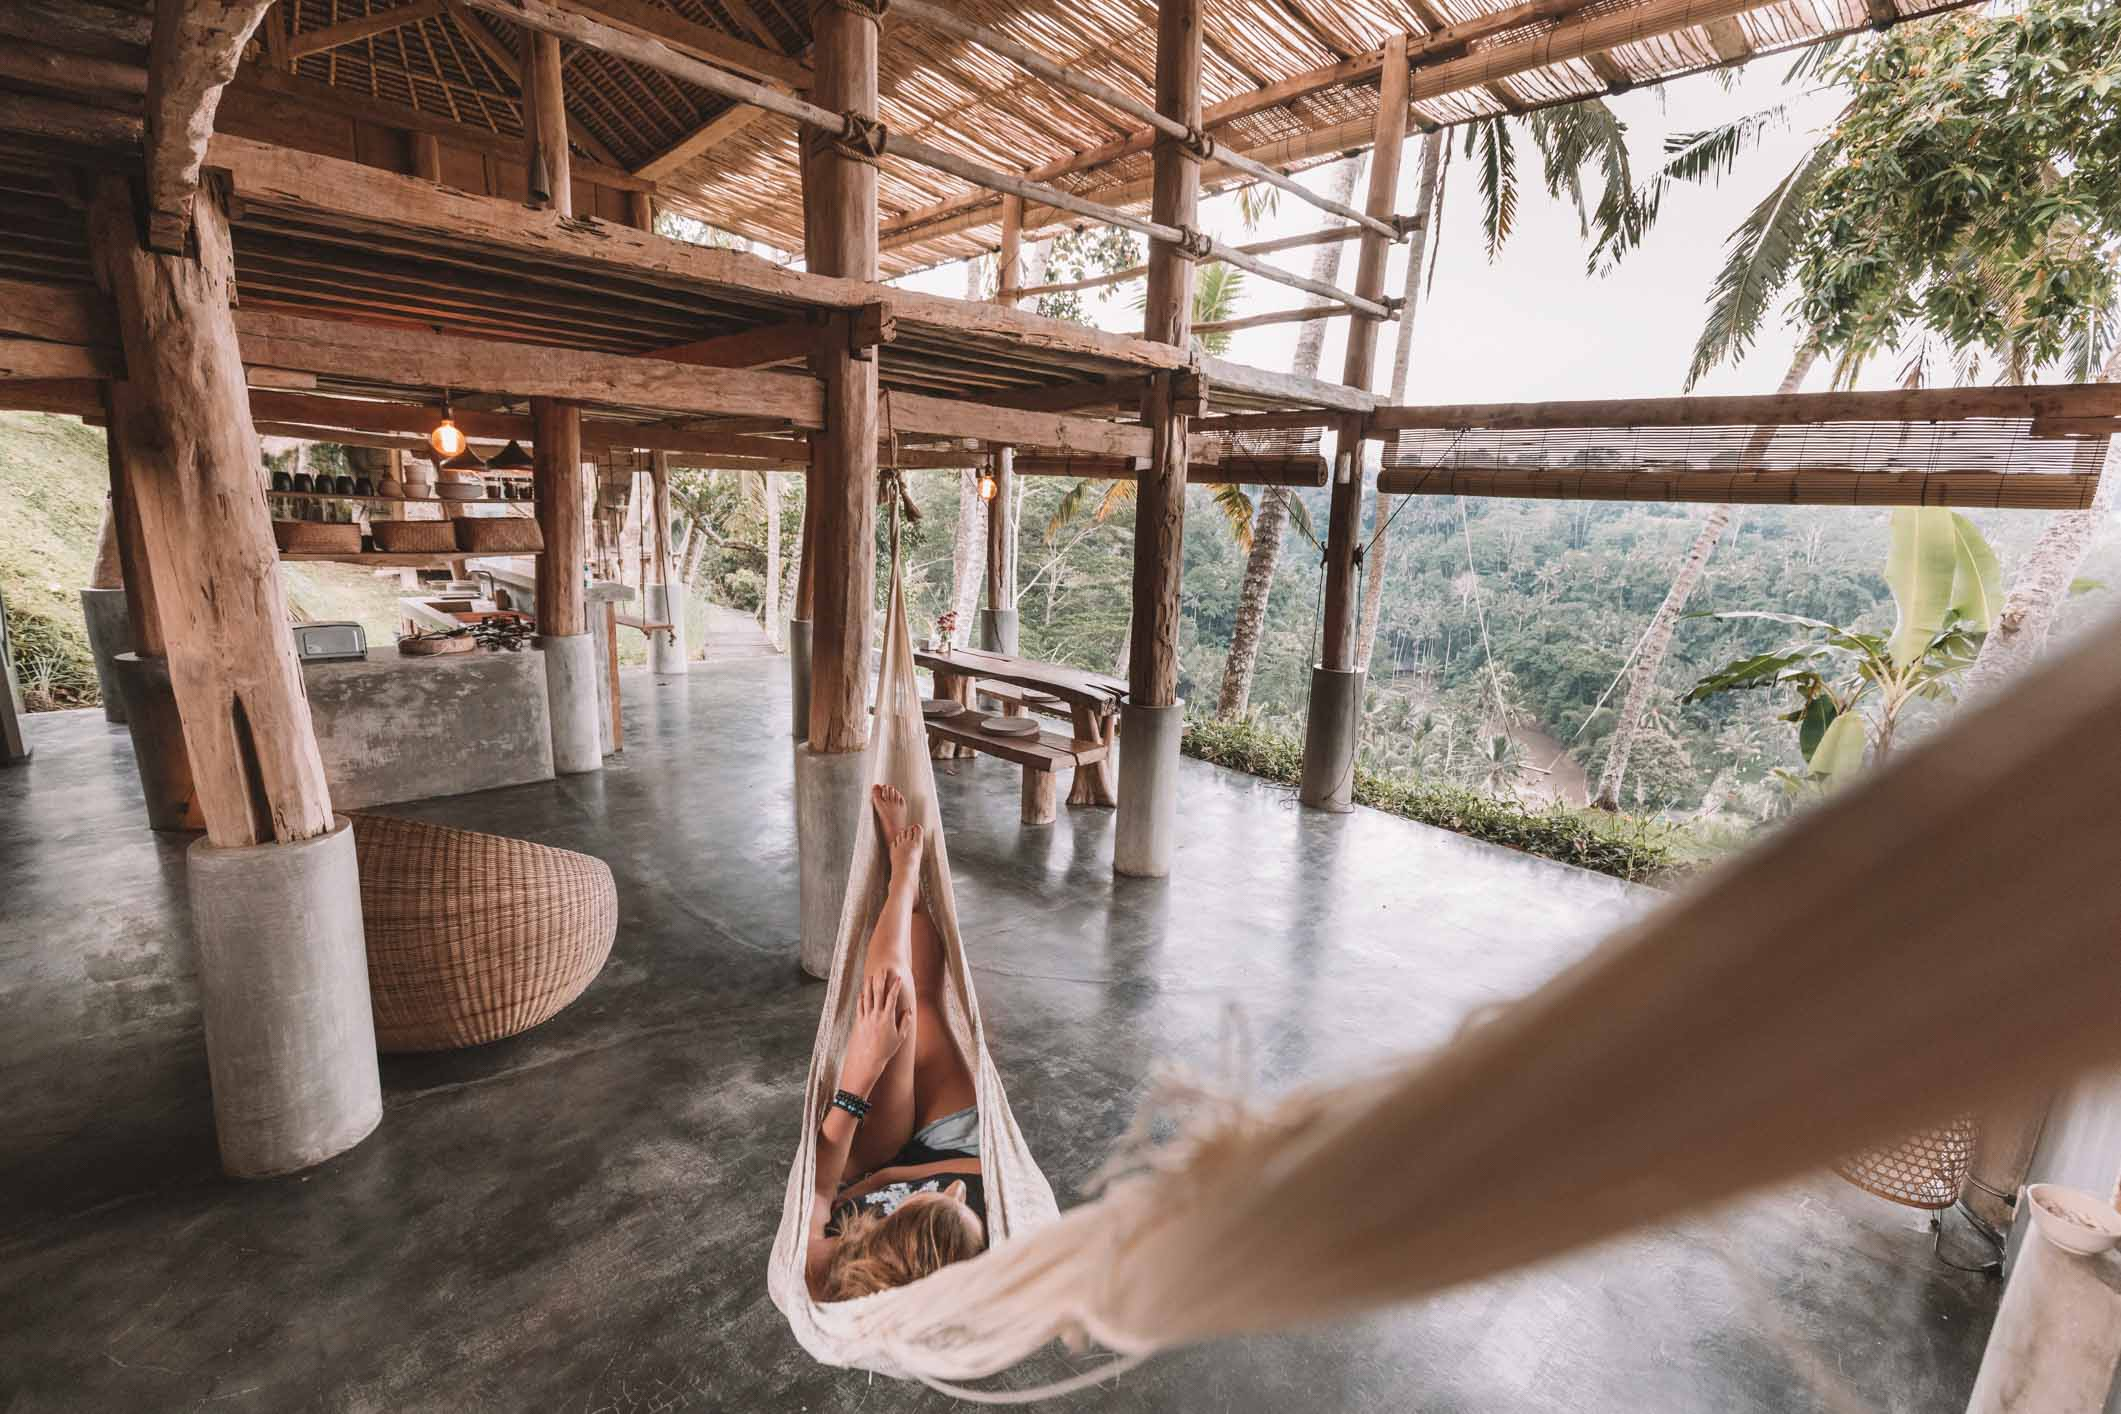 Hostel Bali – Find Cheap Accommodation For Less Than $10 per Night